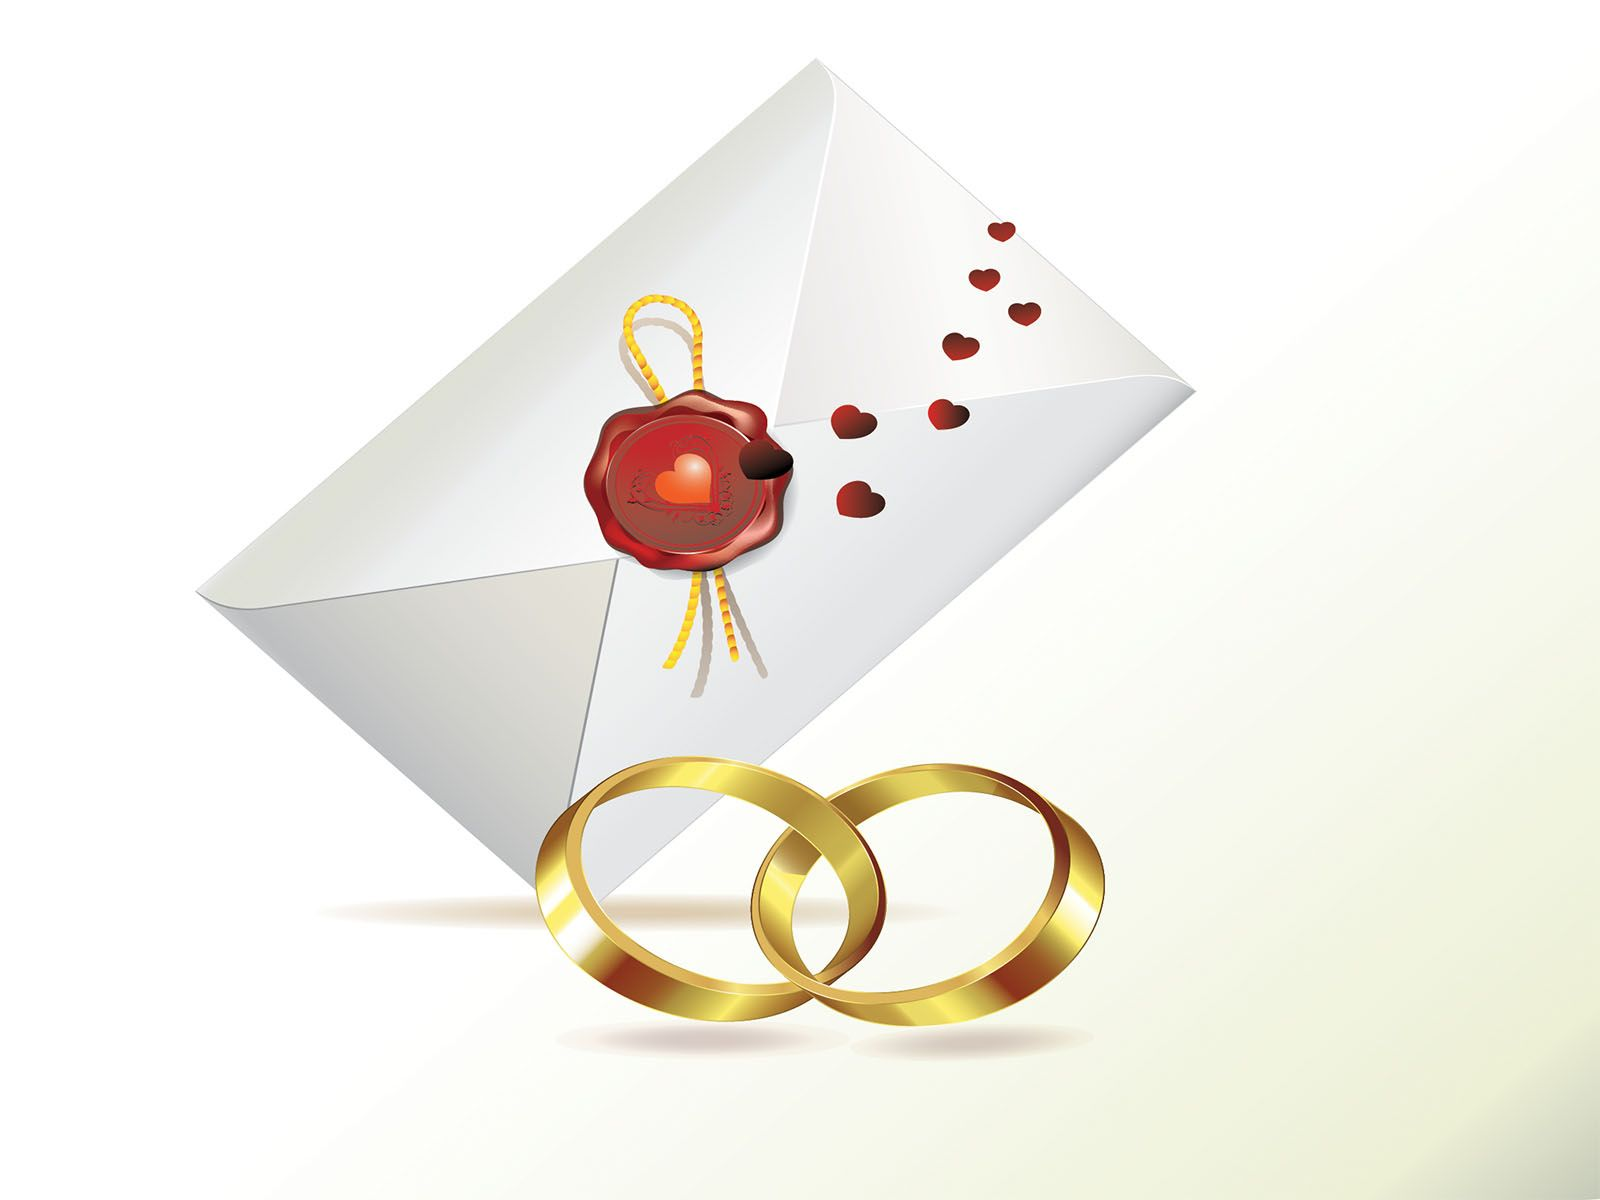 Wedding Invitation And Rings Powerpoint Templates  Love Ppt